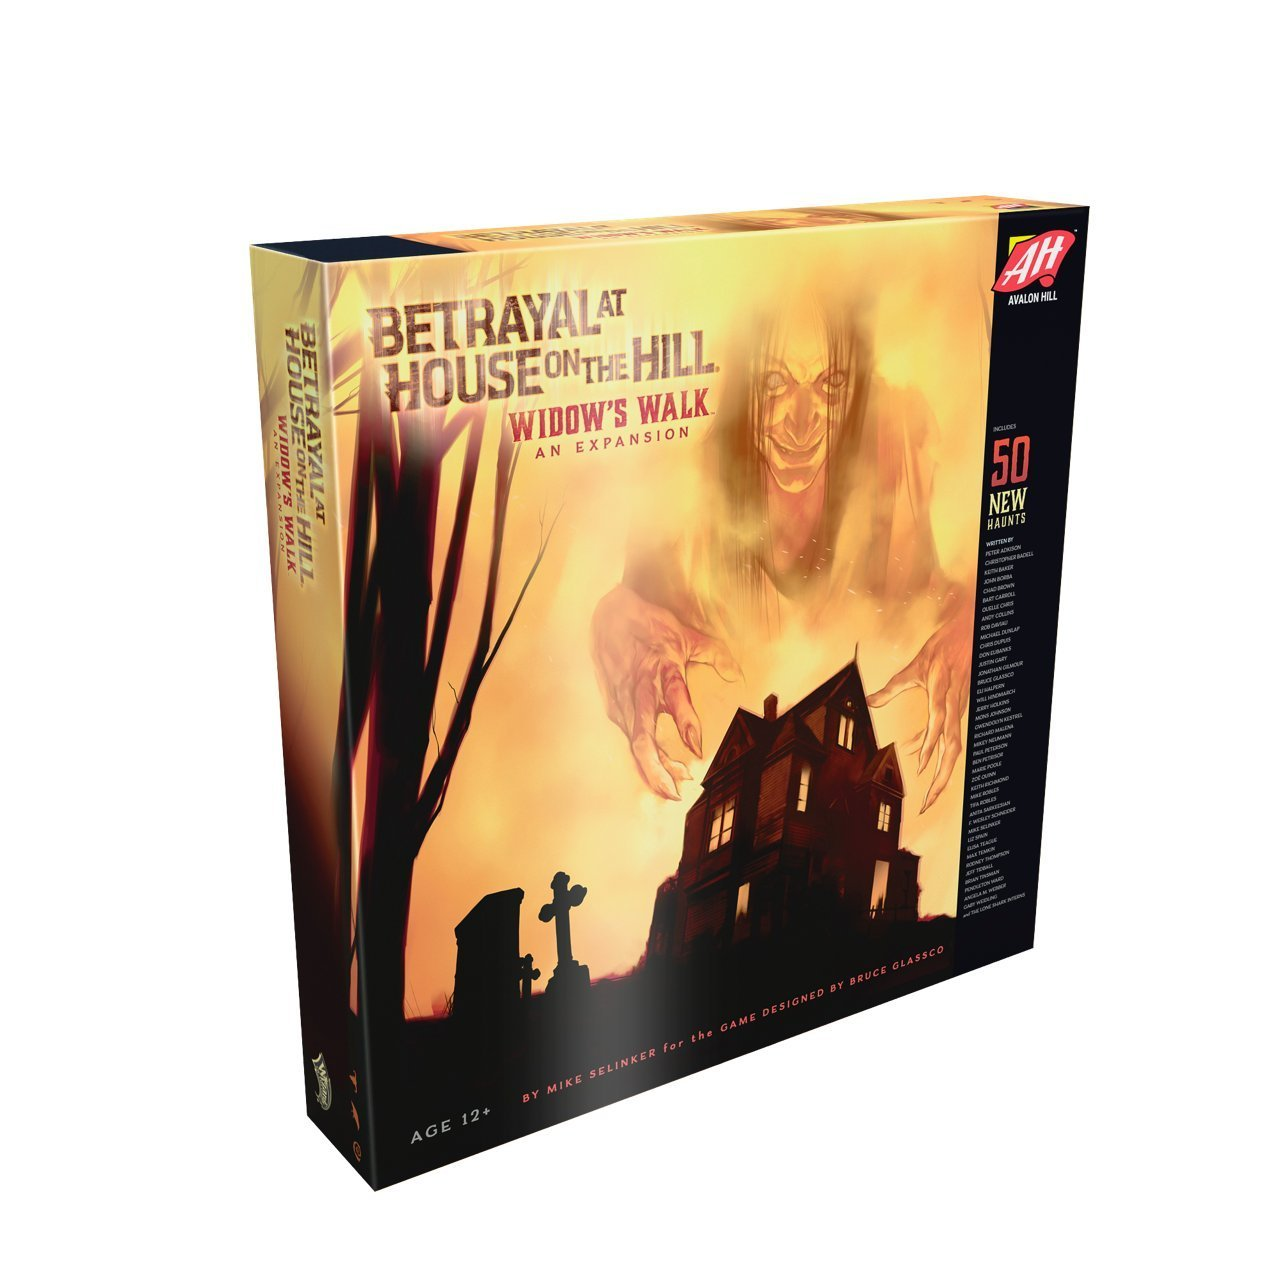 Betrayal At House on the Hill: Widow's Walk - I had the honor of writing a haunt for one of my favorite board games of all time, the board game that made me fall in love with board games again as an adult, Betrayal at House on the Hill. I was already extremely excited when I found out they were making an expansion - but being able to be a part of it alongside so many other talented writers was an amazing experience I'm proud of and thankful for.I hope players enjoy my haunt despite it uh... inadvertently being entirely too close to eerily predicting the present. Sometimes horror gets too real. Whoops.